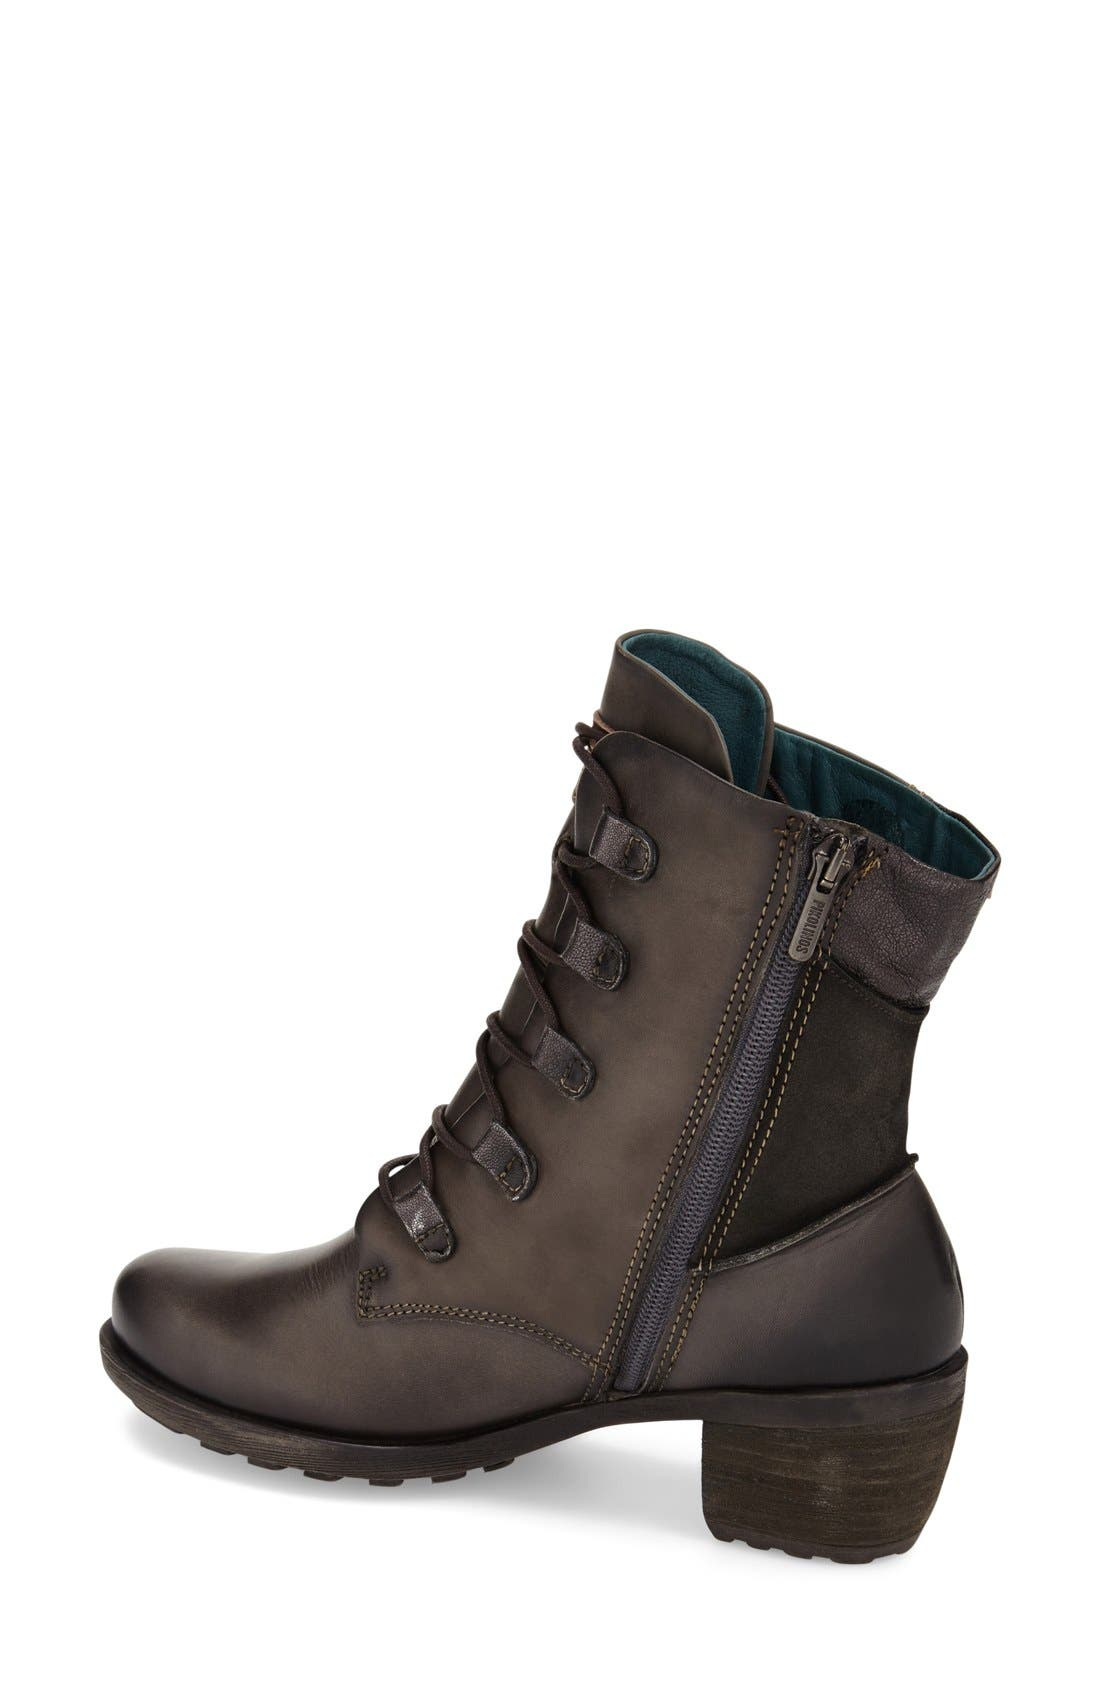 Alternate Image 2  - PIKOLINOS 'Le Mans' Lace-Up Boot (Women)